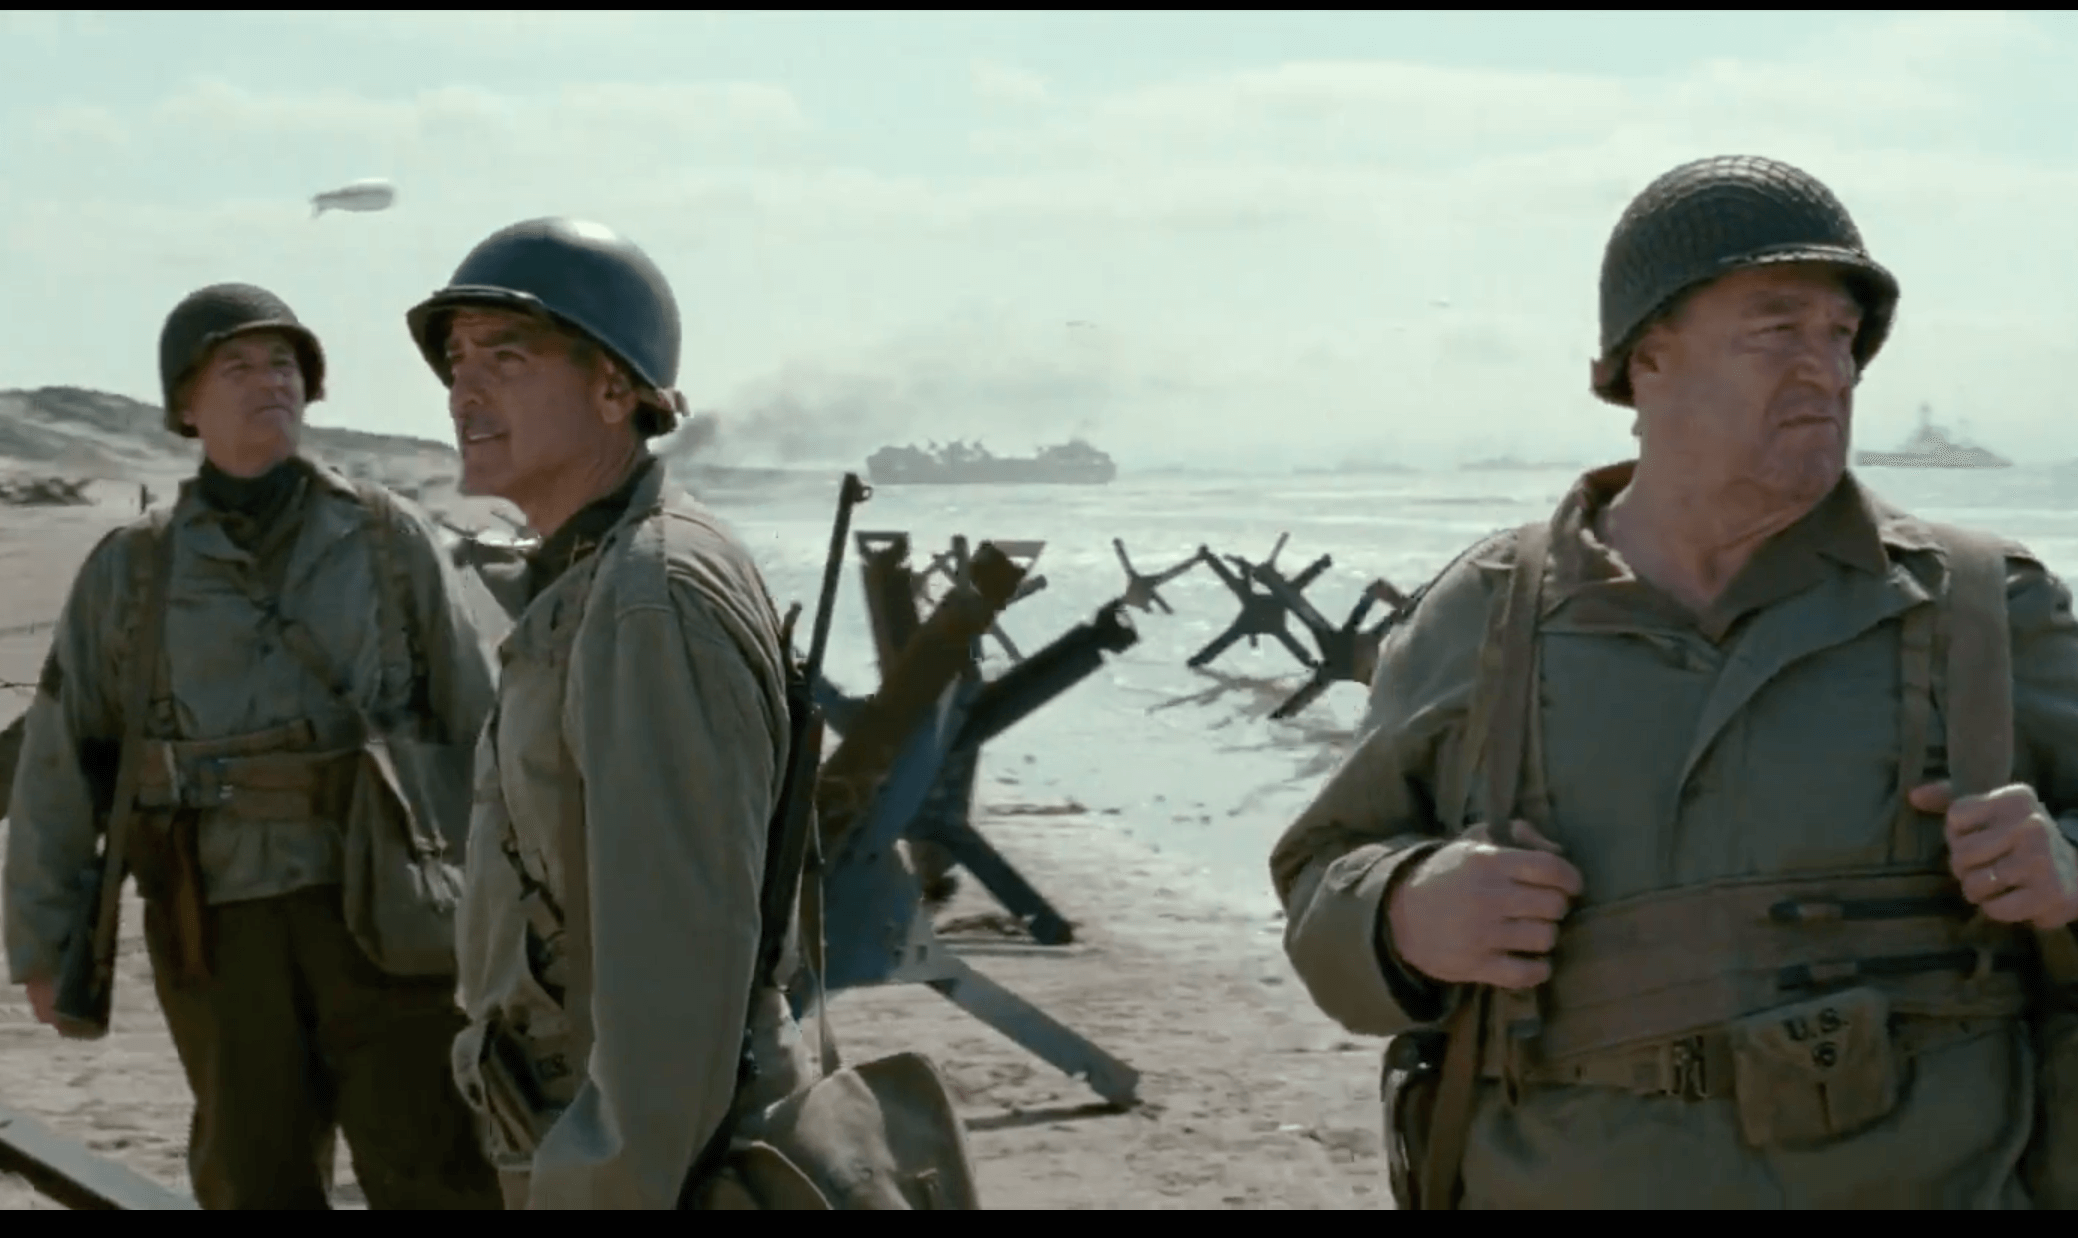 The Monuments Men filmed at Camber Sands